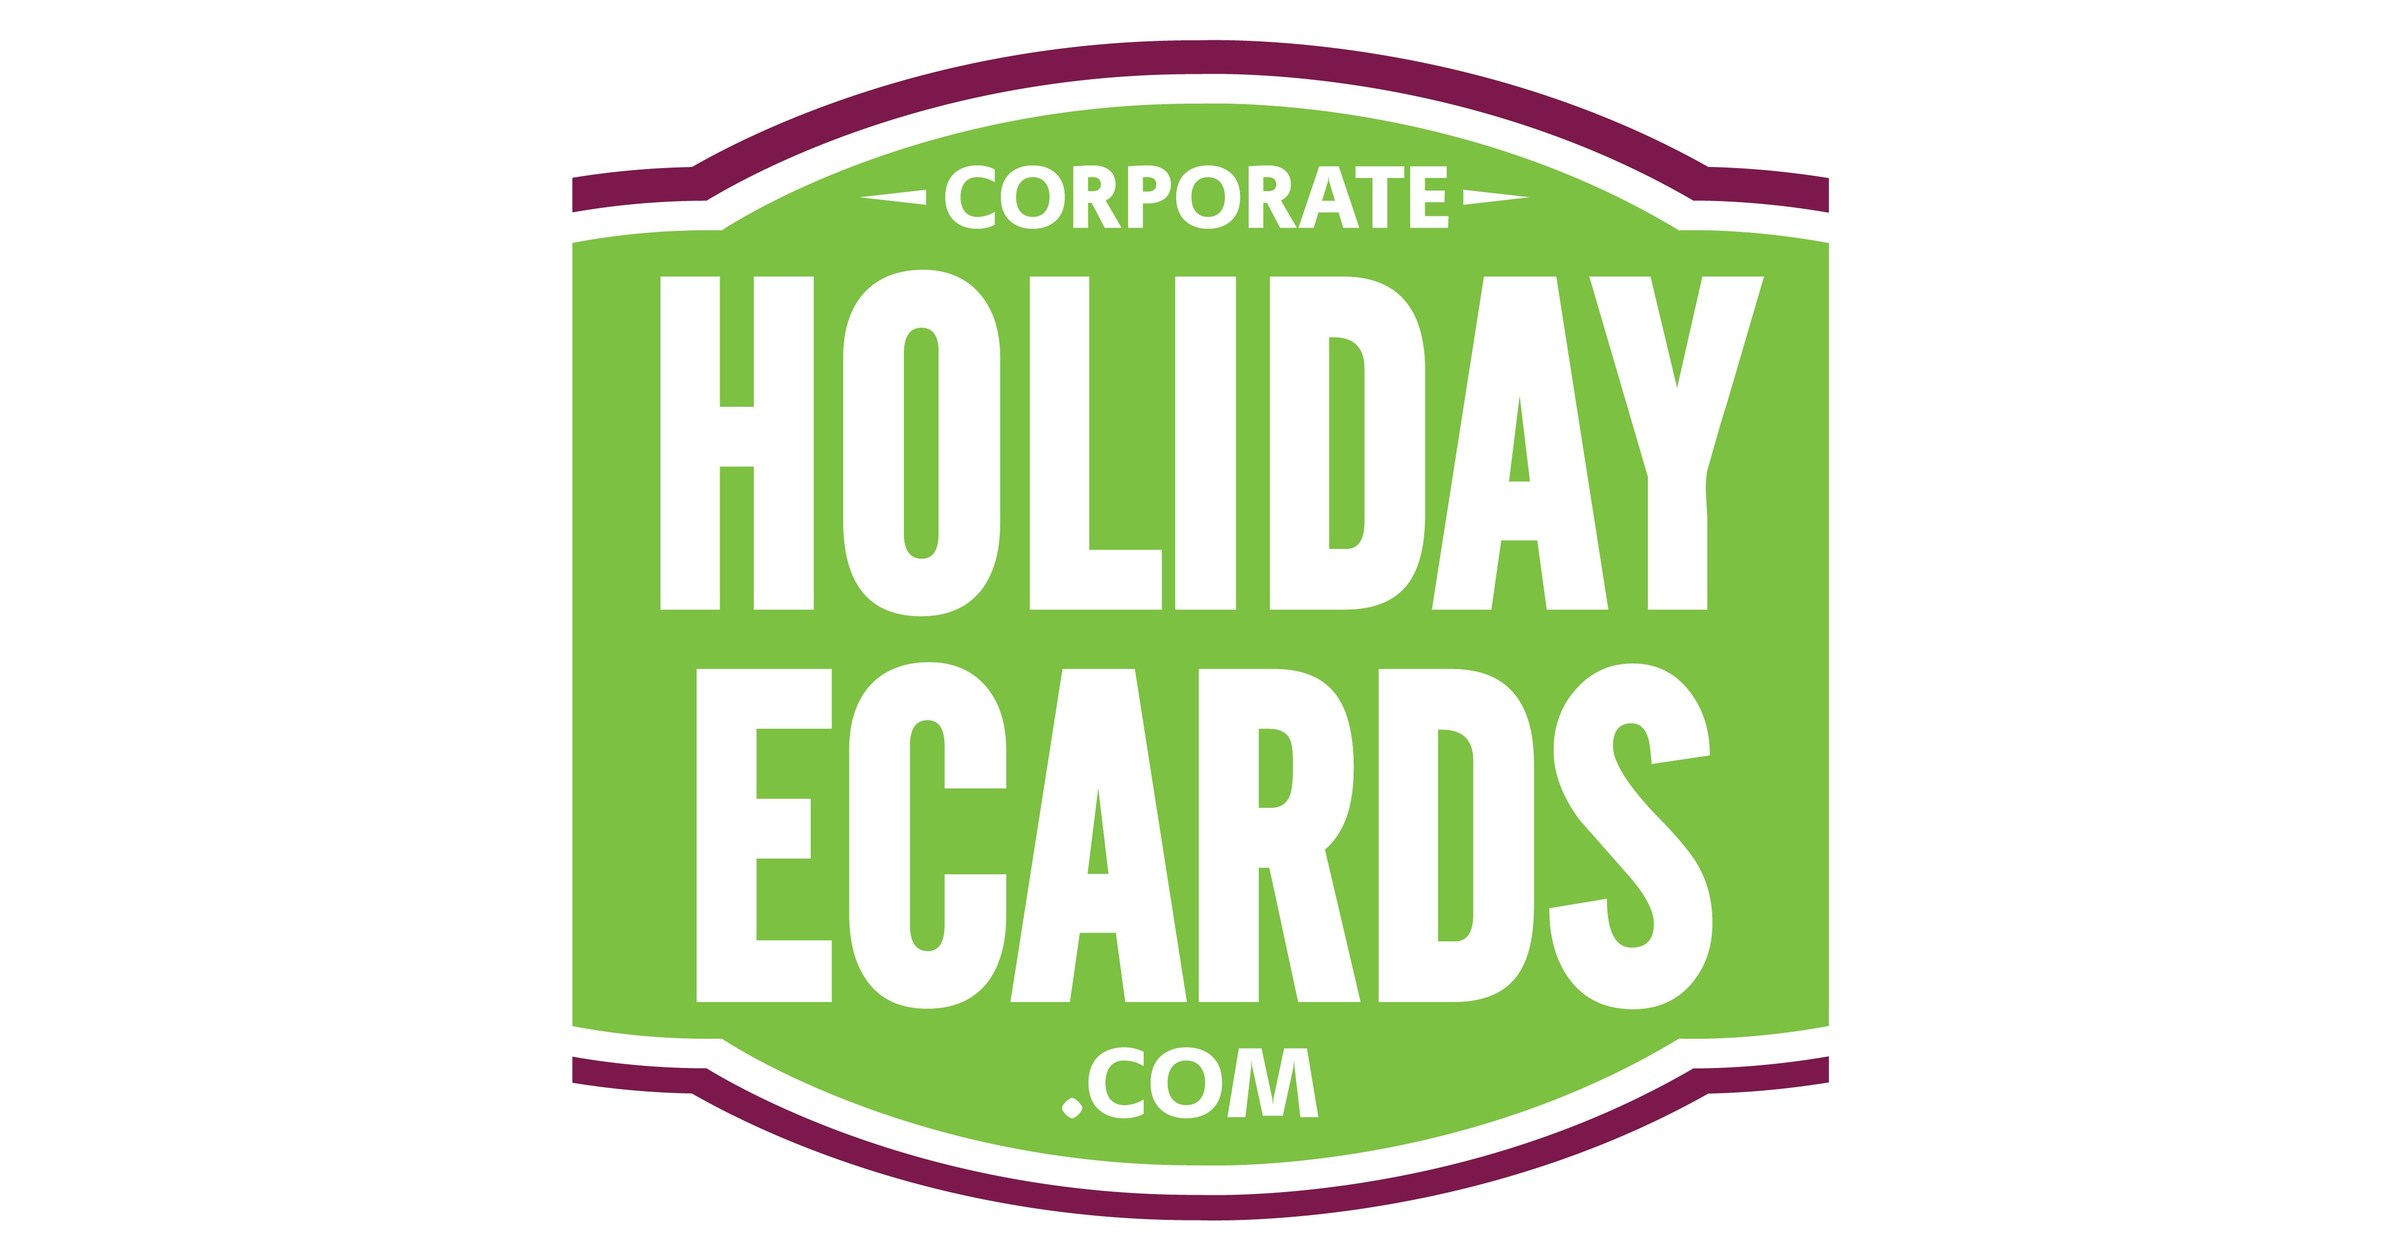 Corporate holiday ecards revamps entire greeting card collection corporate holiday ecards revamps entire greeting card collection enhances animated email viewing kristyandbryce Choice Image